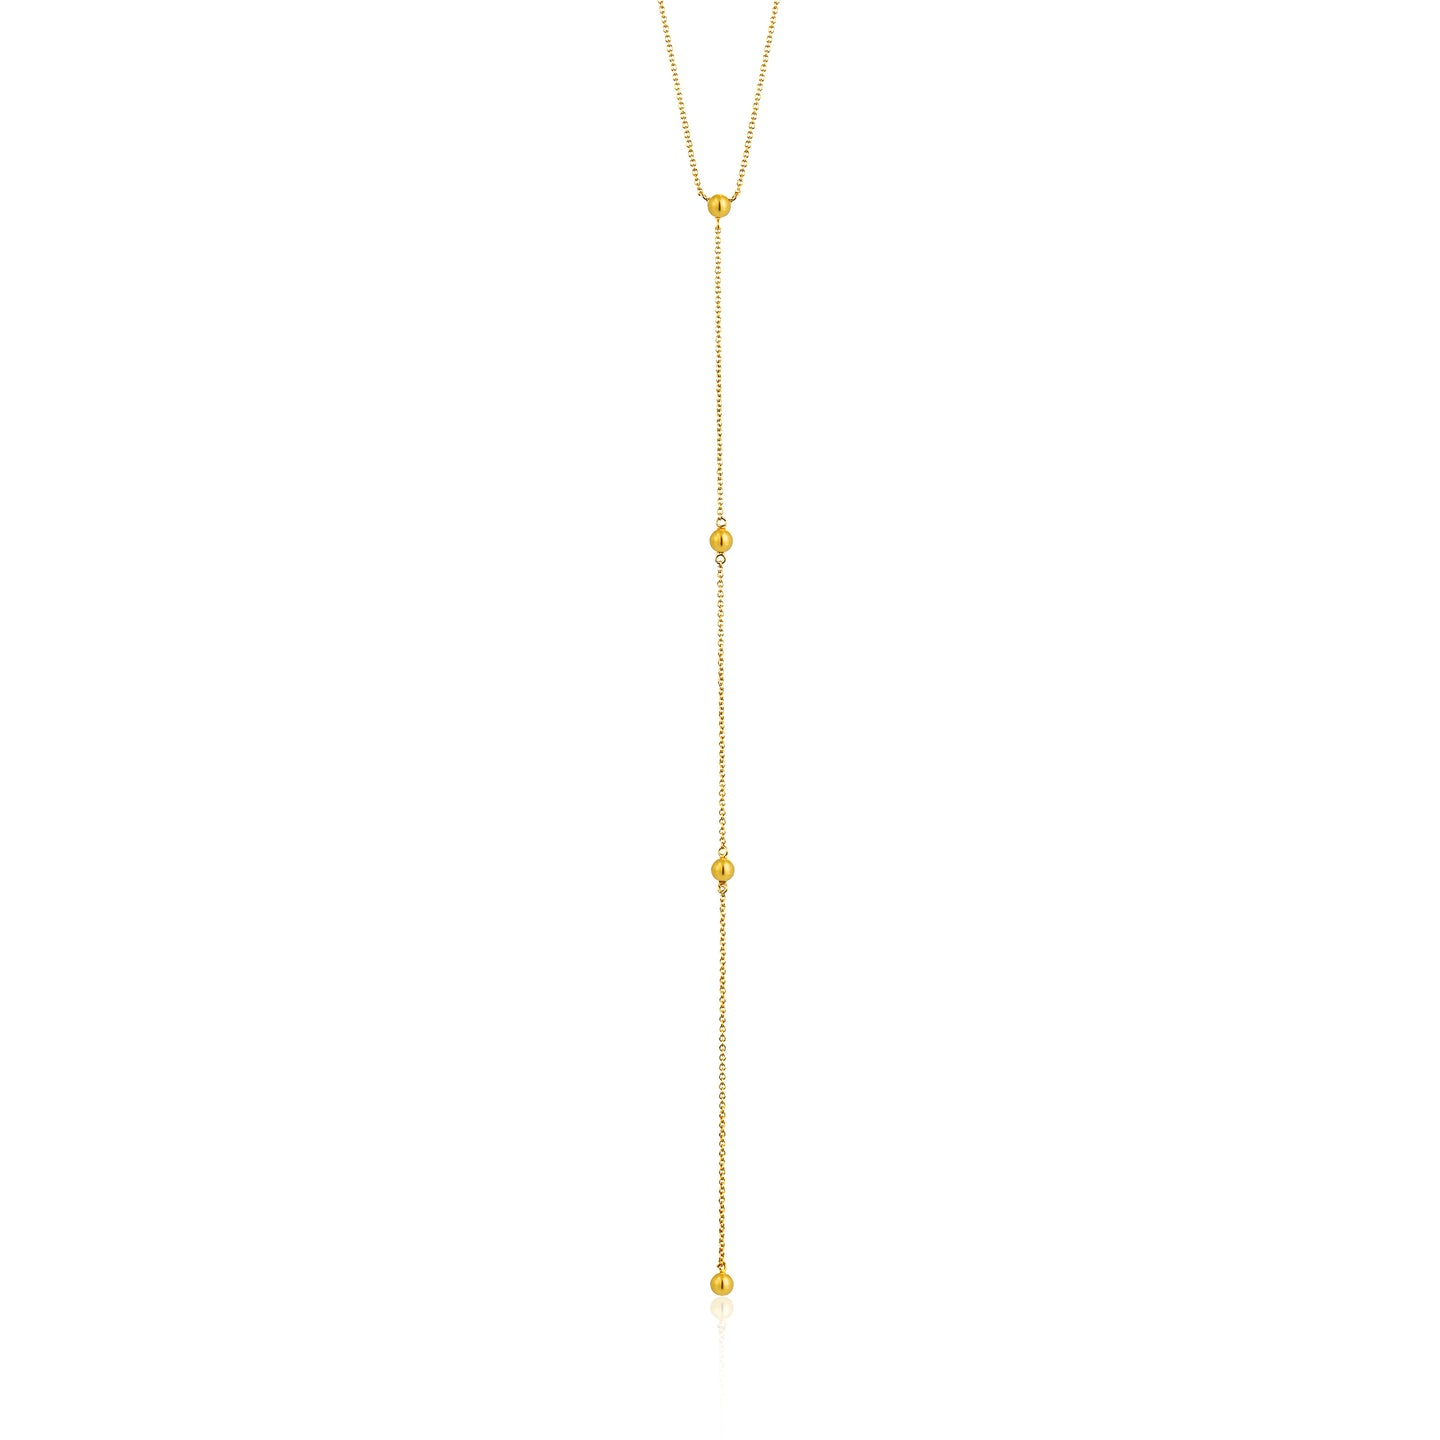 Gold Modern Beaded Y Necklace N002-02G